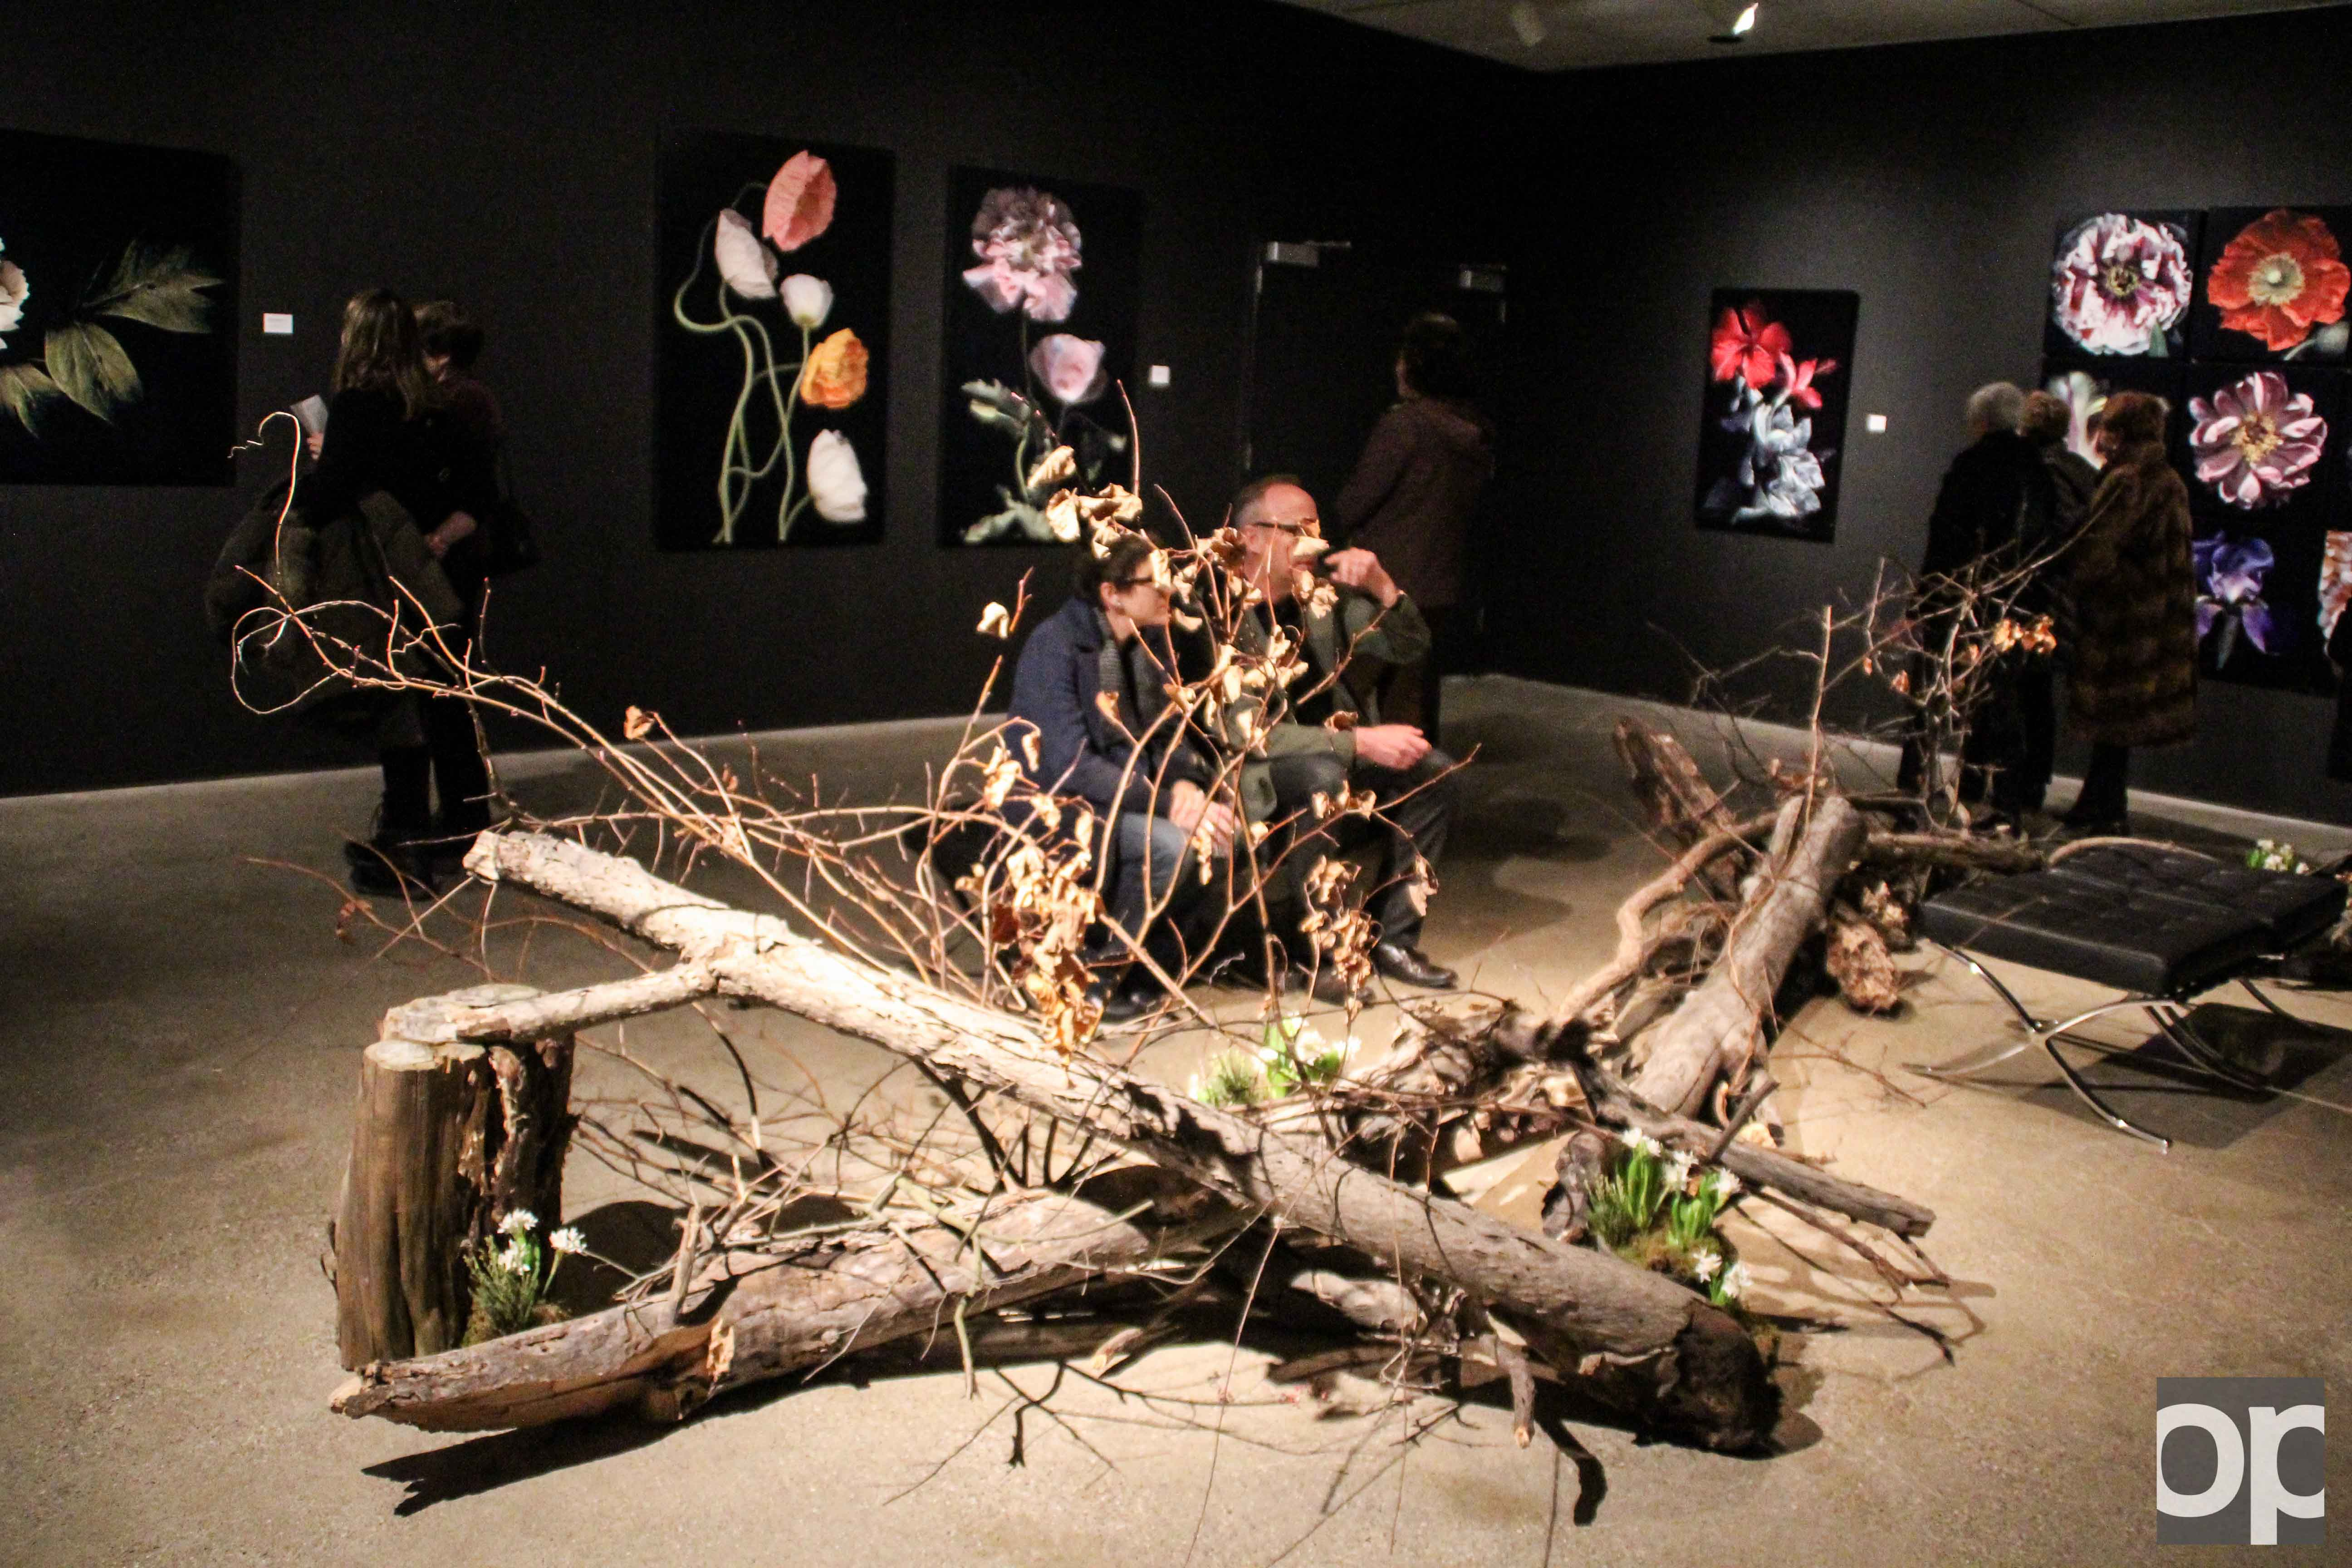 The current exhibit at the Oakland University Art Gallery, Hiberna Flores, will be on display until Feb. 19.